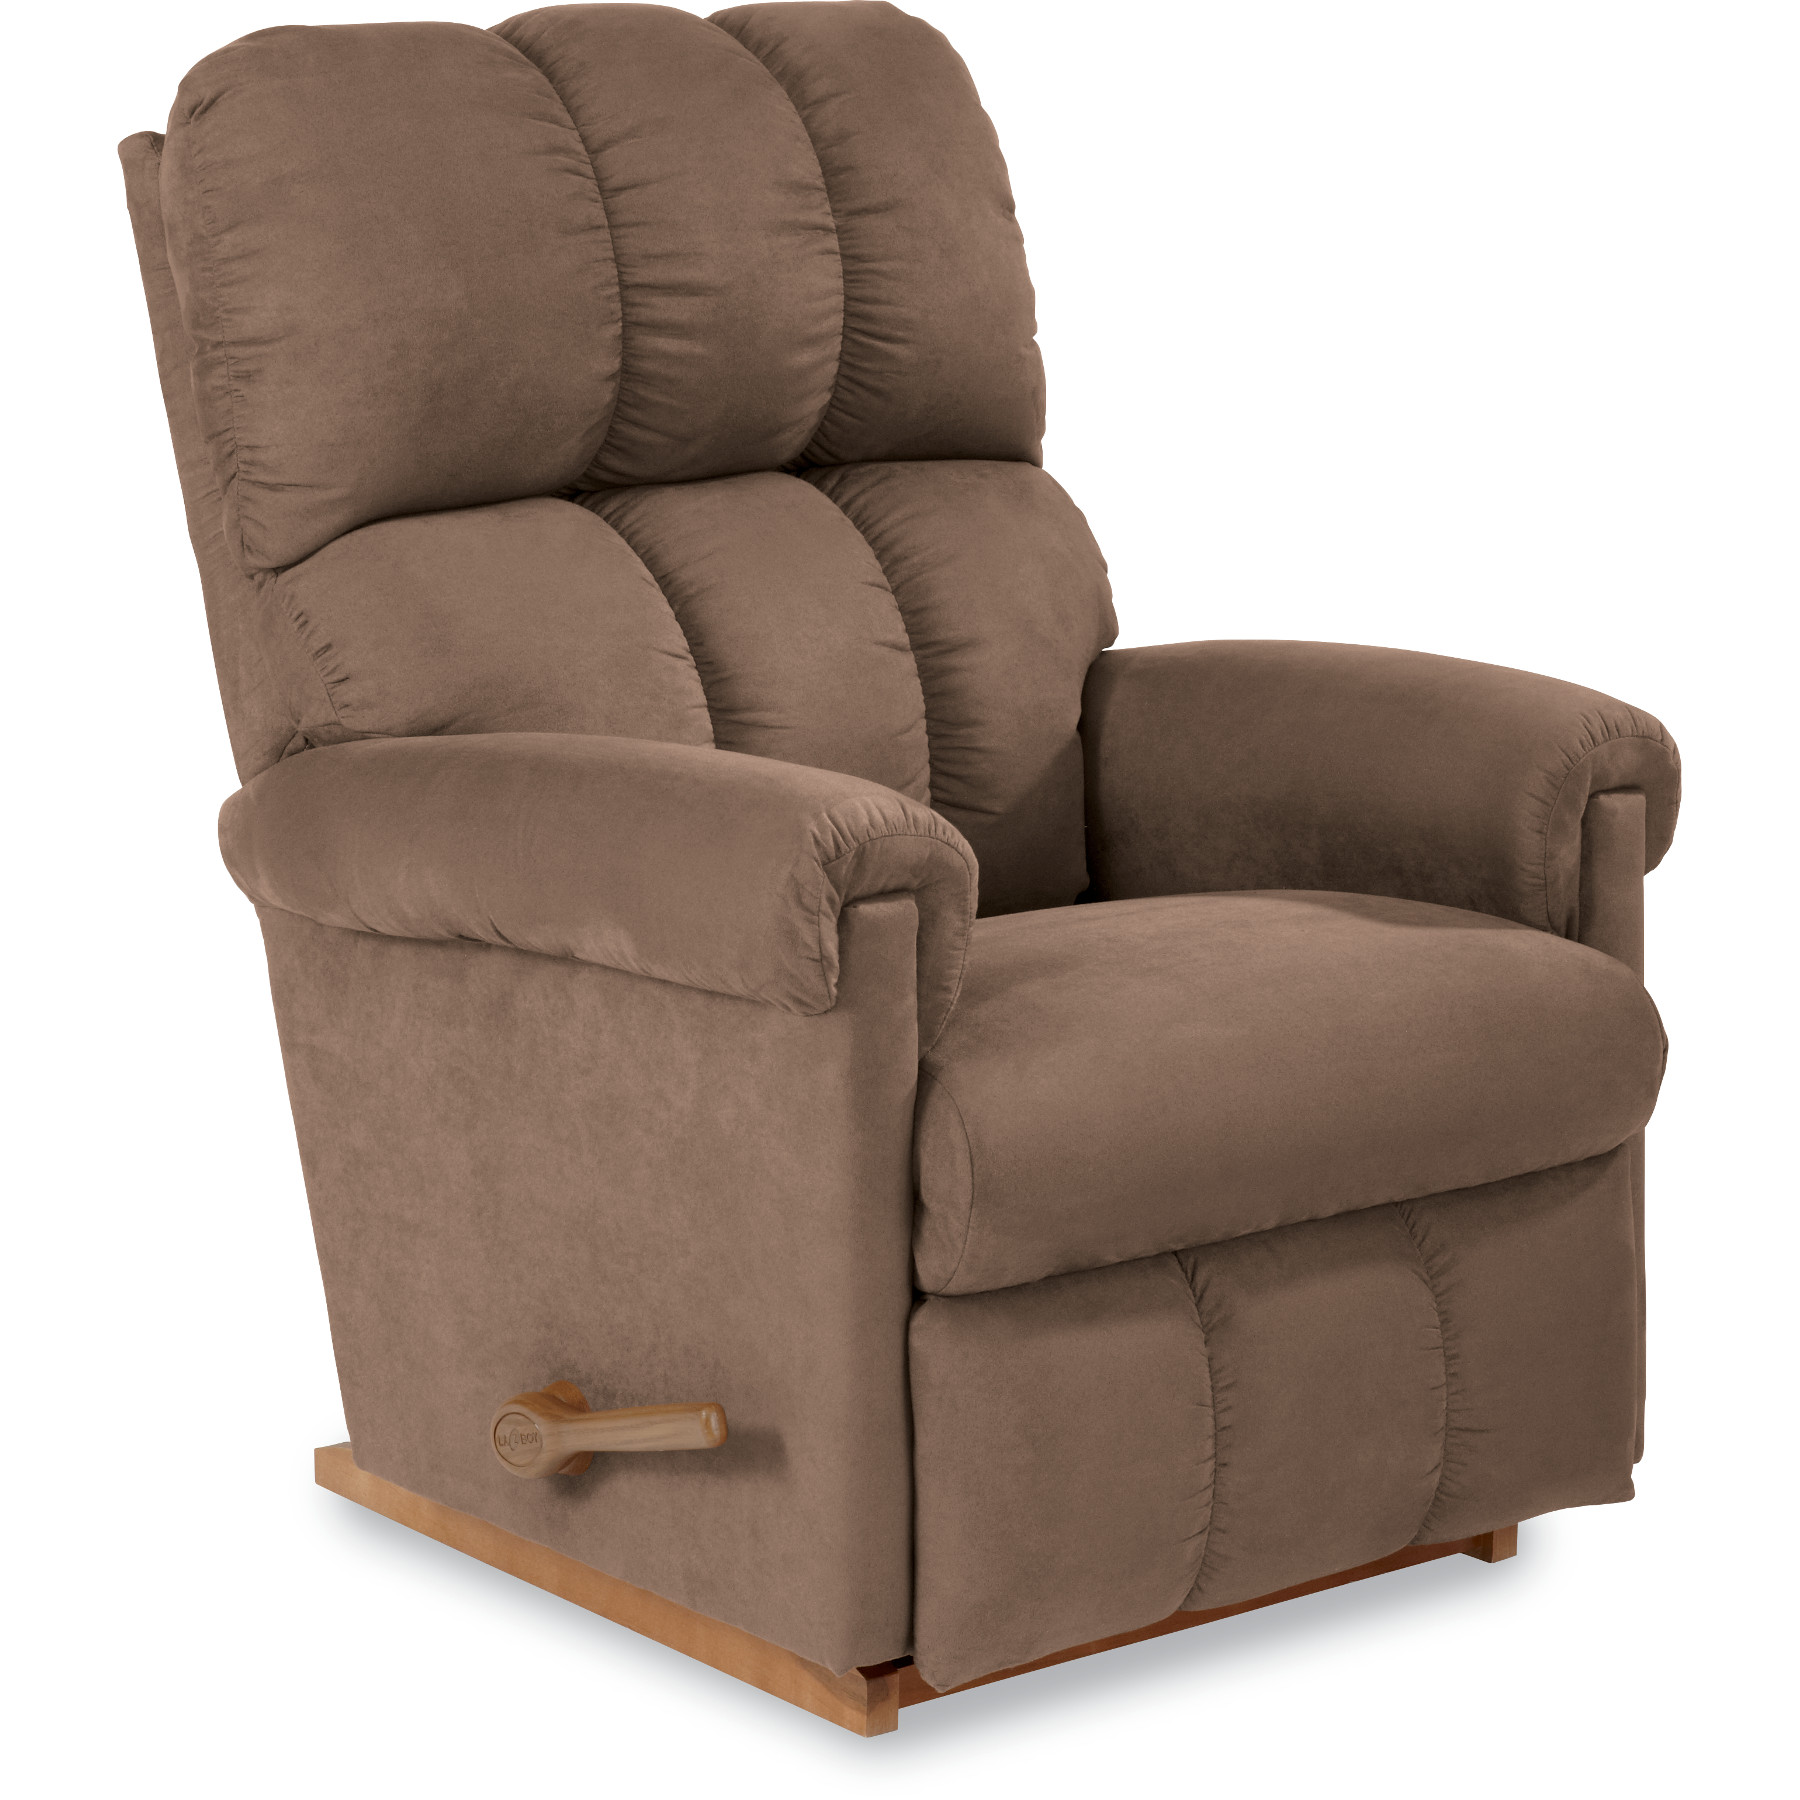 Lazy Boy Swivel Chair La Z Boy Aspen Rocker Recliner Driftwood